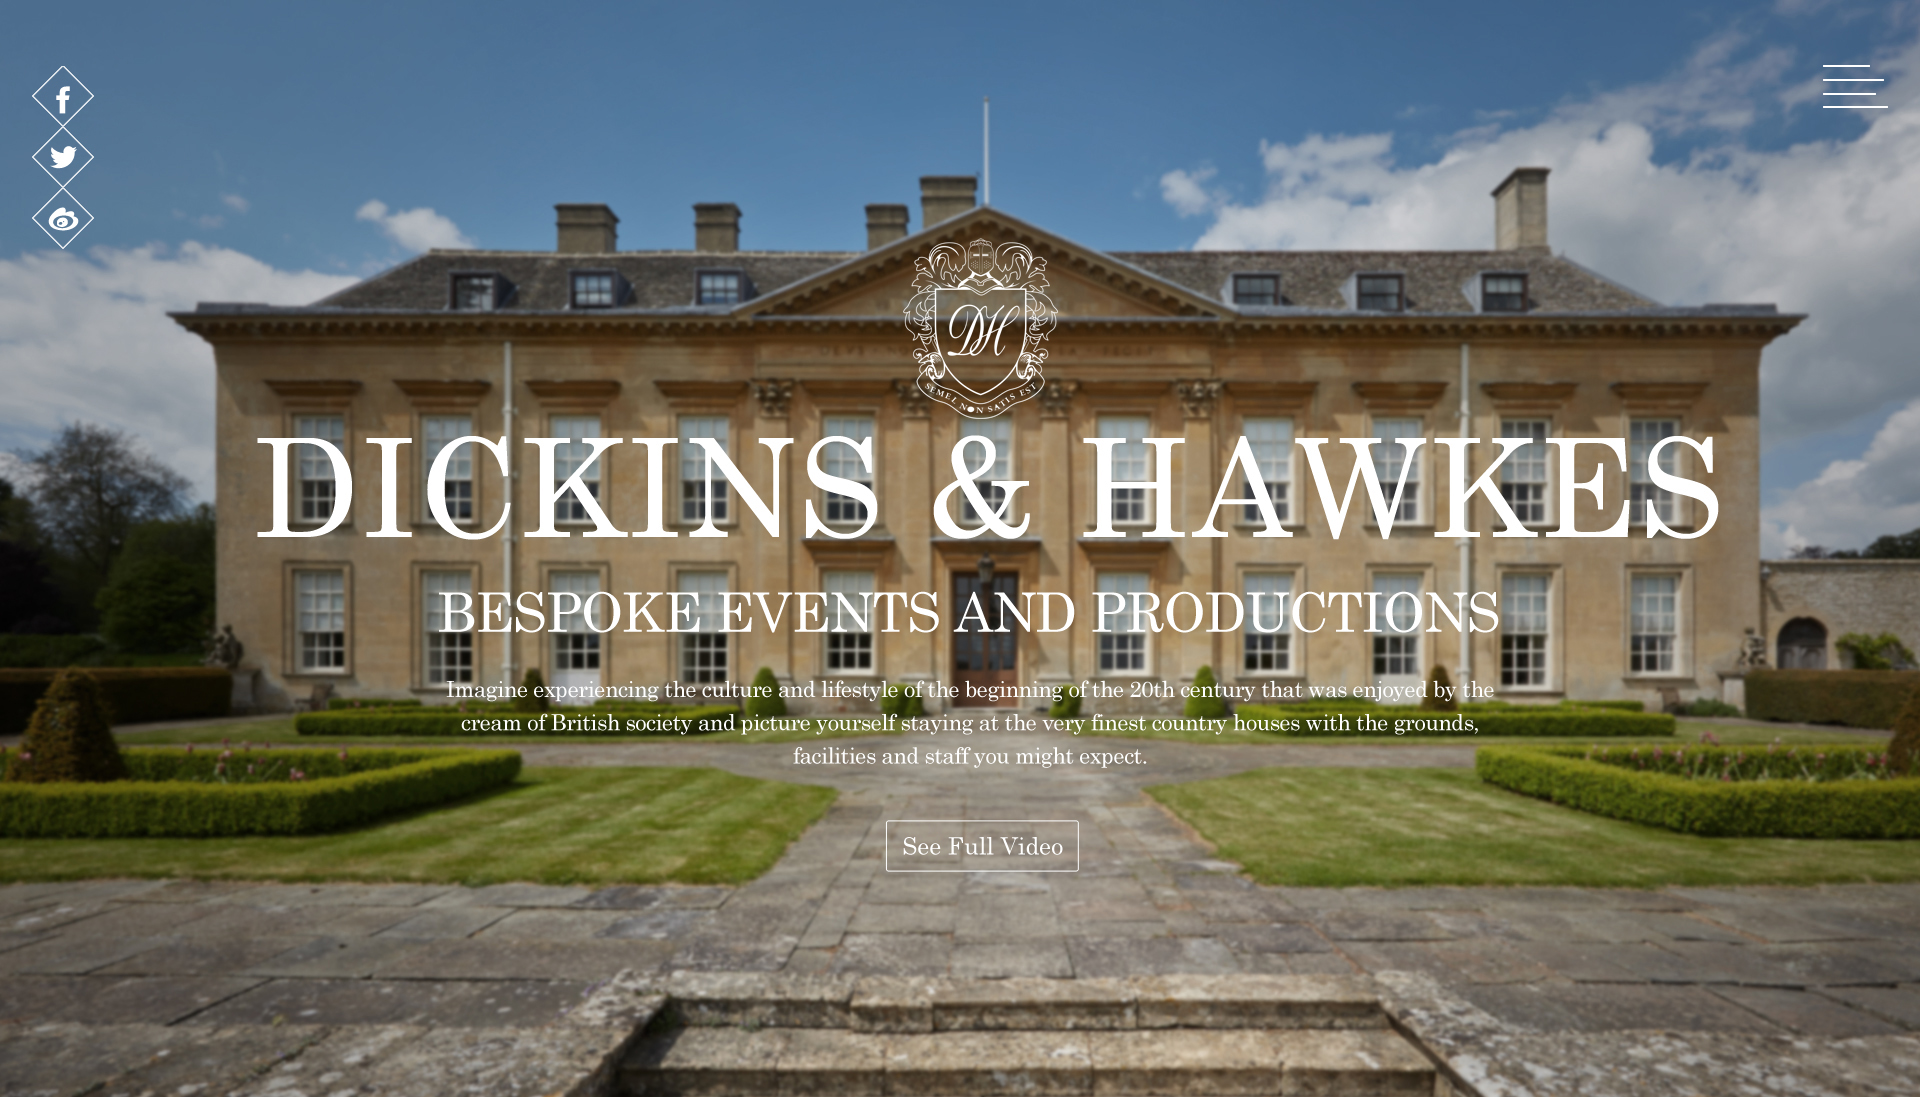 Dickins & Hawkes WEBSITE